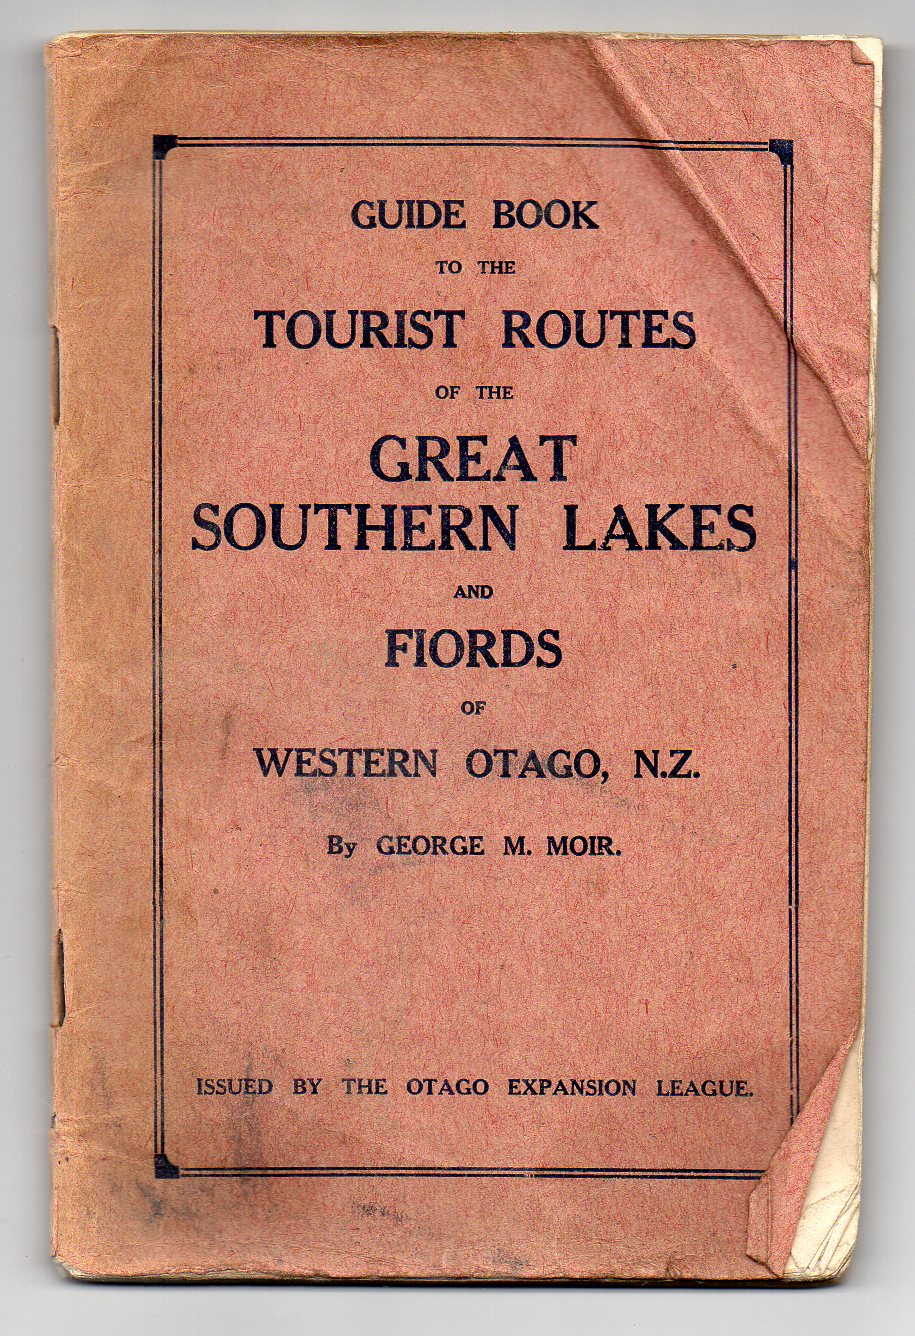 Image for Guide Book to the Tourist Routes of the Great Southern Lakes Including Te Anau, Wakatipu, Manapouri, Wanaka, Hawear, Monowai, Hauroto, etc. and the Fiords of Western Otago, N. Z.